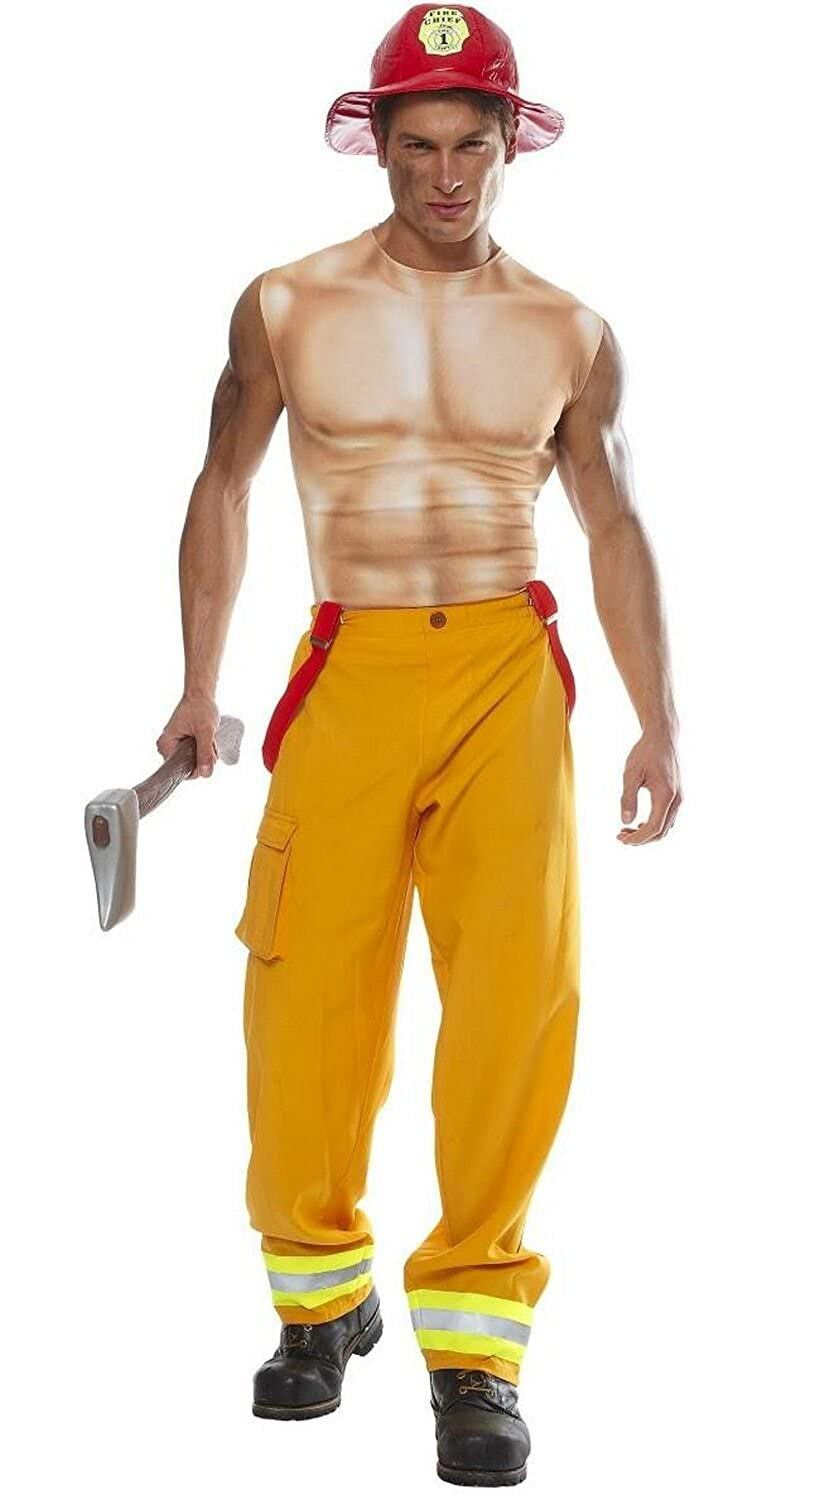 amazoncom sexy firefighter dude costume clothing - Fireman Halloween